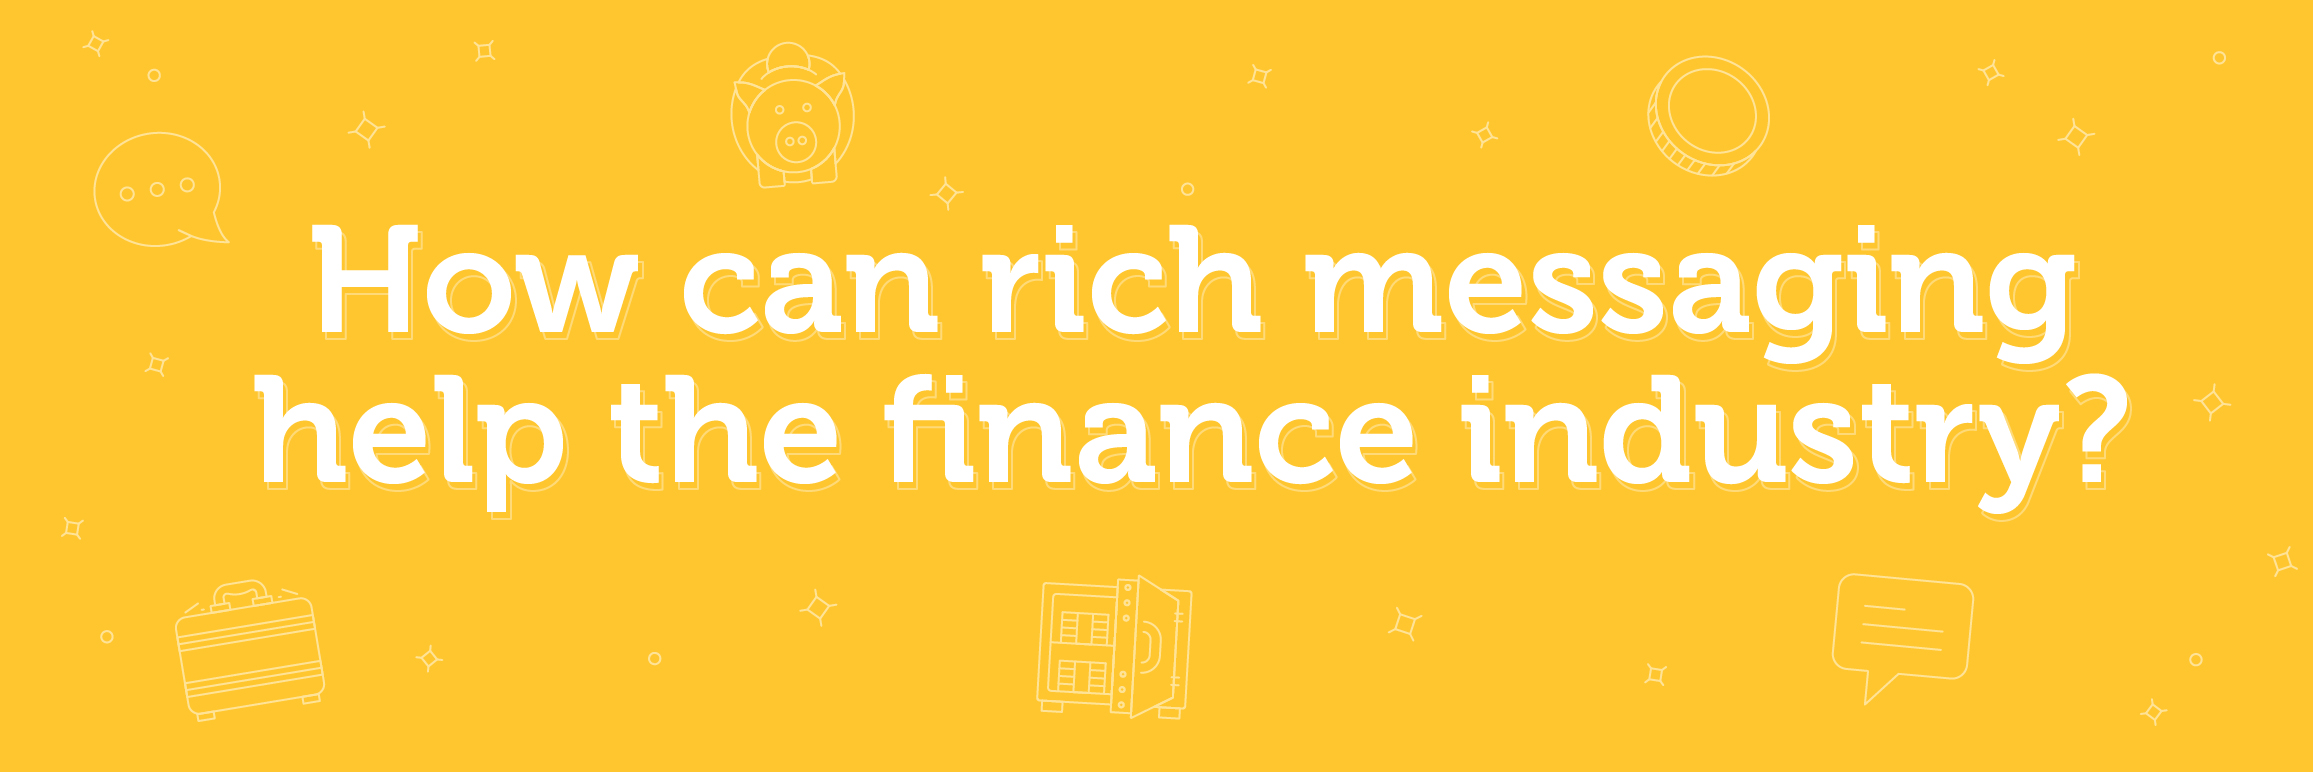 Rich messaging and the finance industry